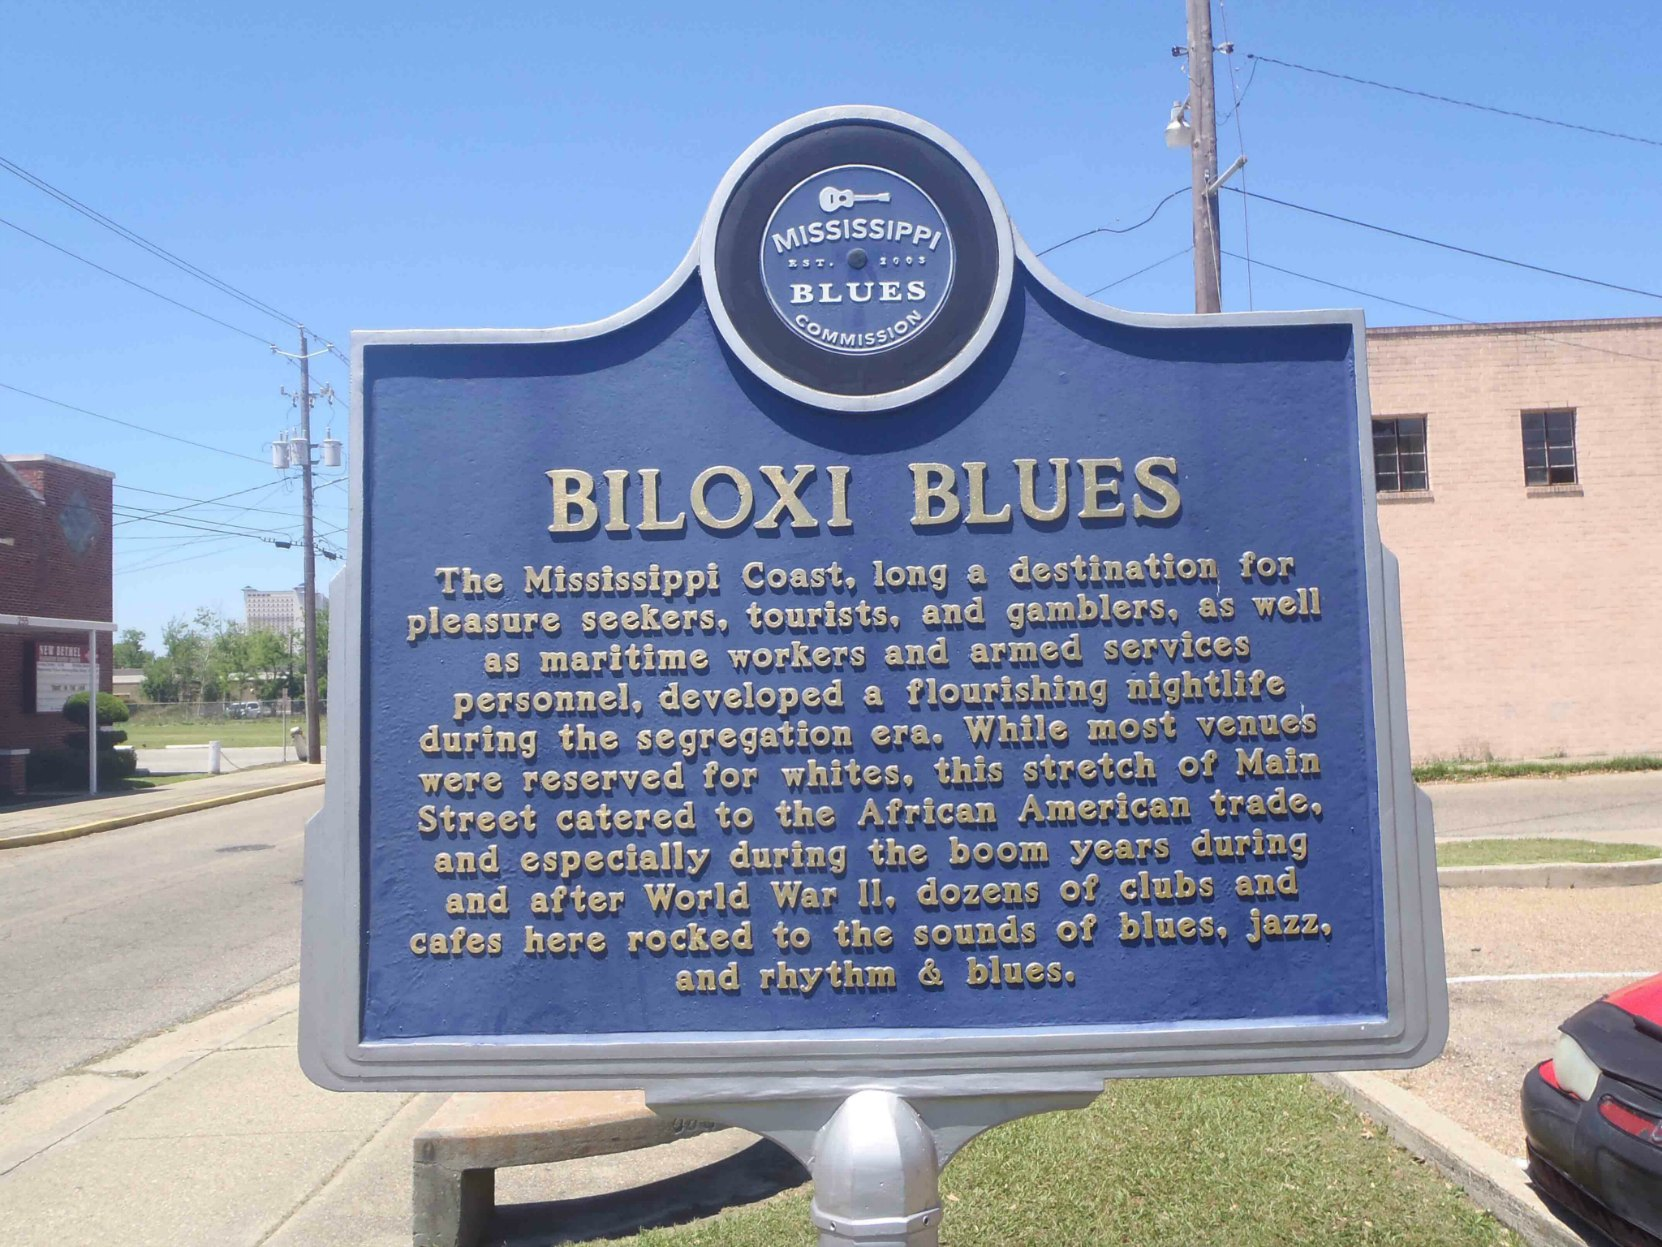 Mississippi Blues Trail marker, Biloxi Blues, Main Street, Biloxi, Mississippi